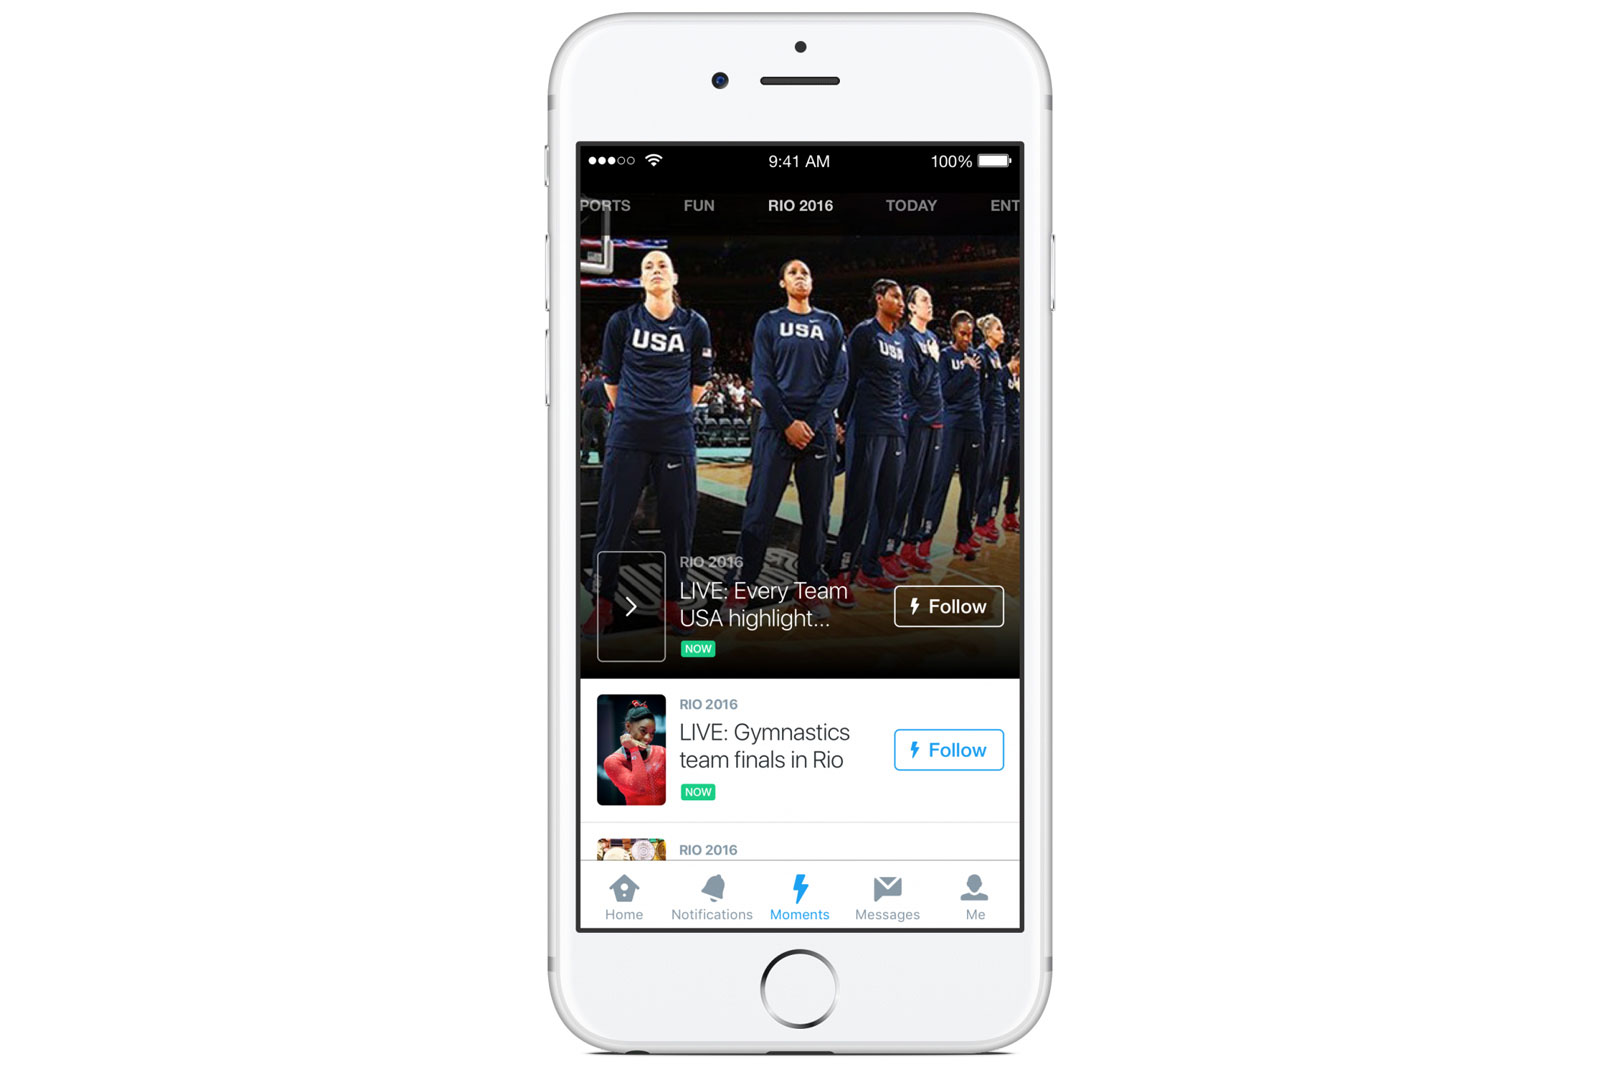 Twitter Moments covering the Rio Olympics